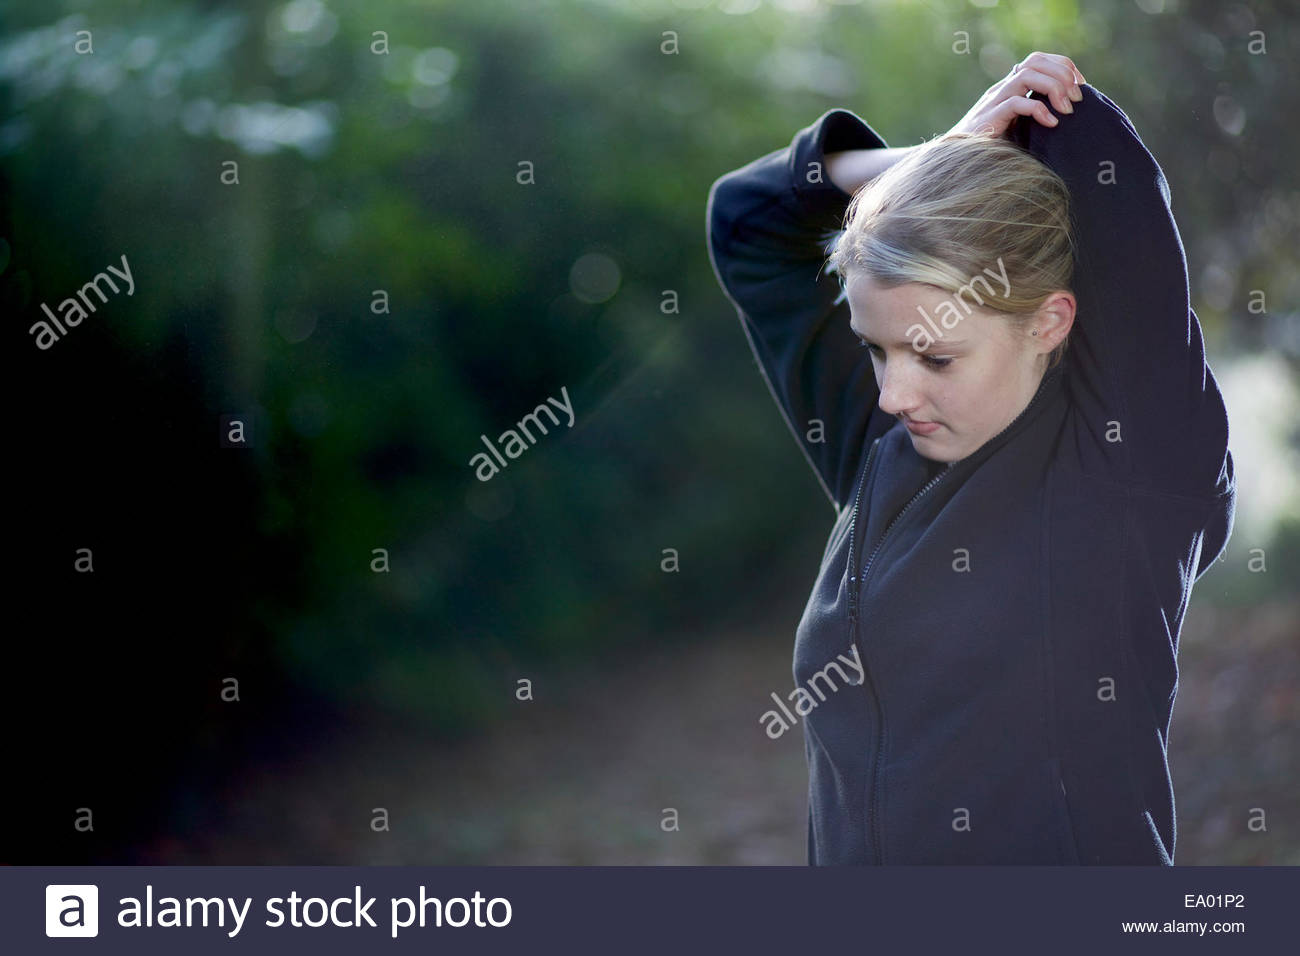 Woman stretching in woods Photo Stock